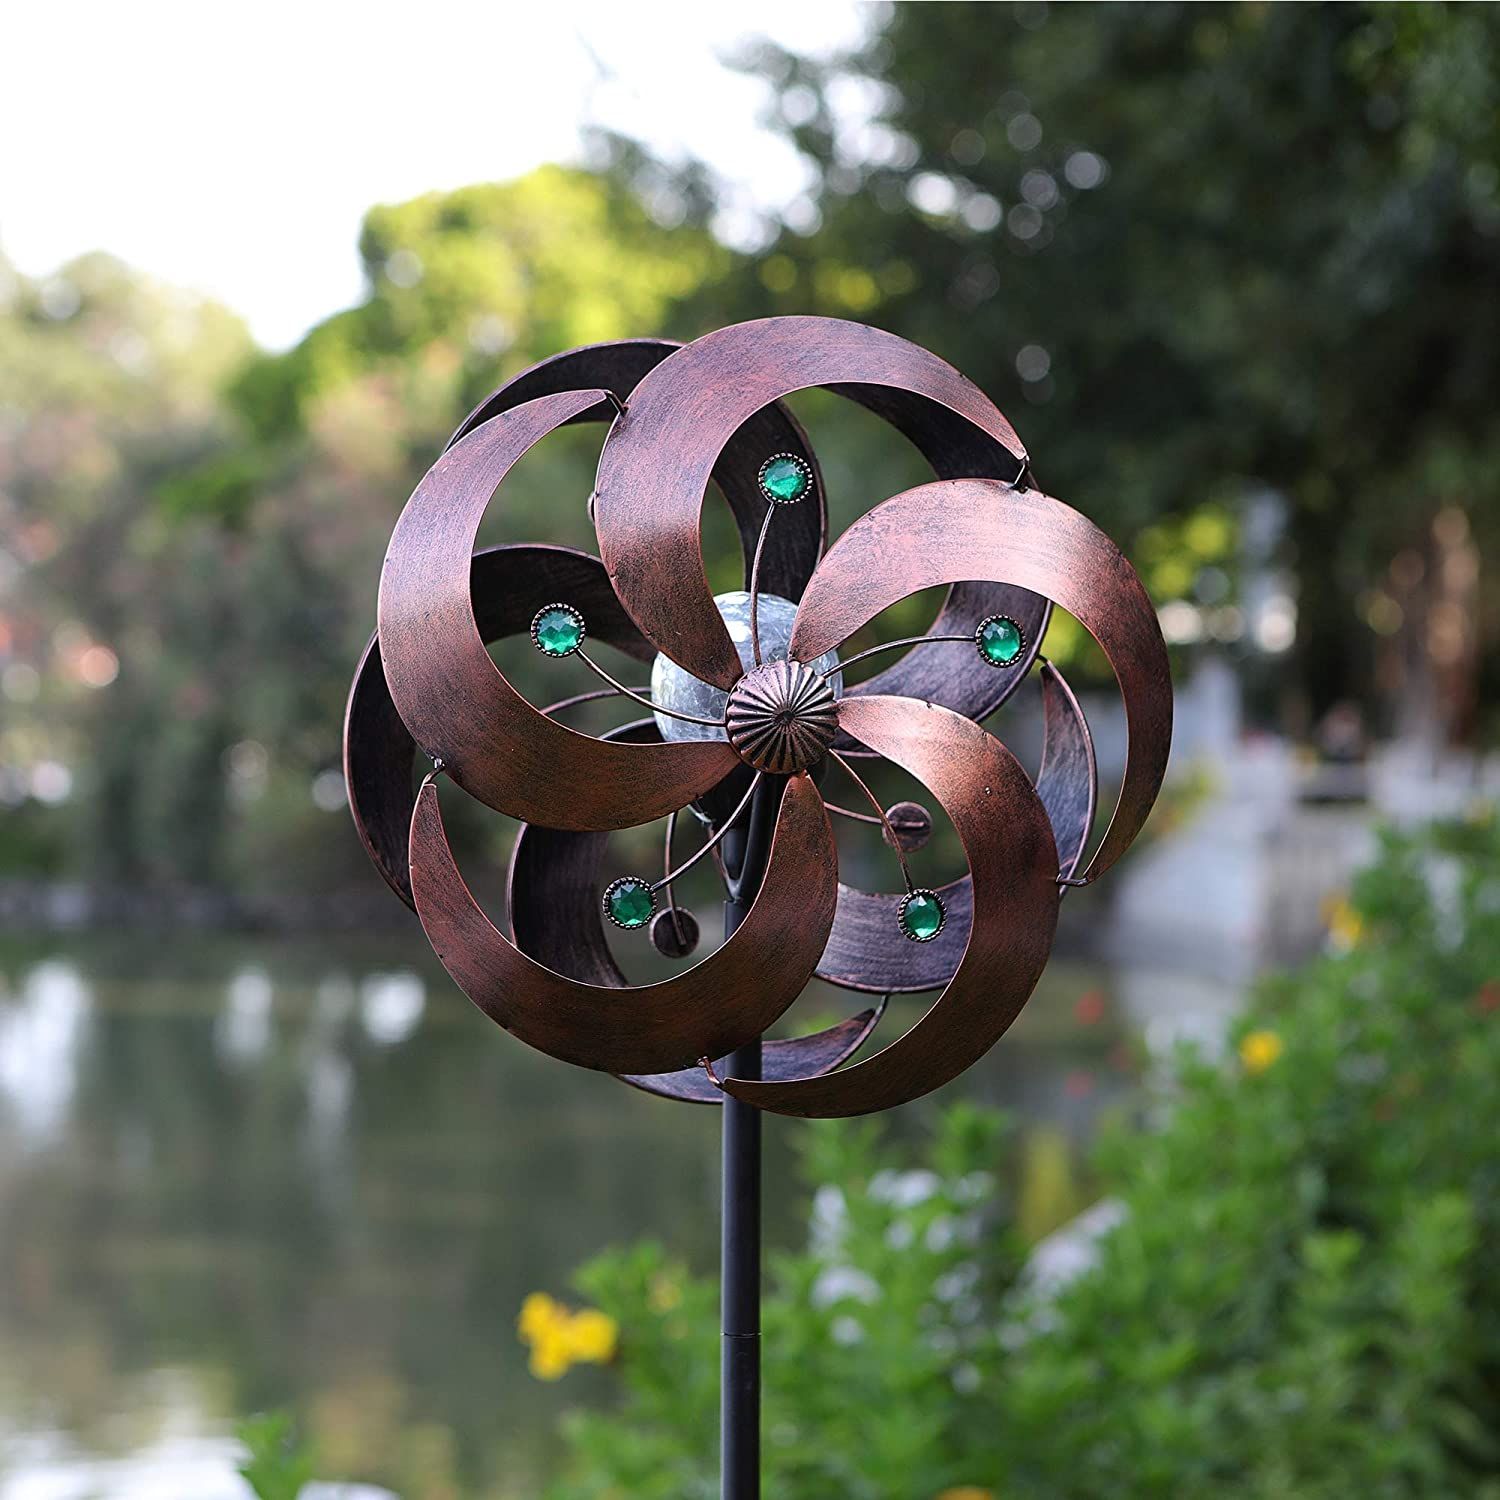 HDNICEZM Solar Wind Spinner Improved 360 Degrees Swivel Multi-Color LED Lighting Glass Ball with Kinetic Wind Spinner Vertical Metal Sculpture Stake Construction for Outdoor Yard Lawn & Garden.